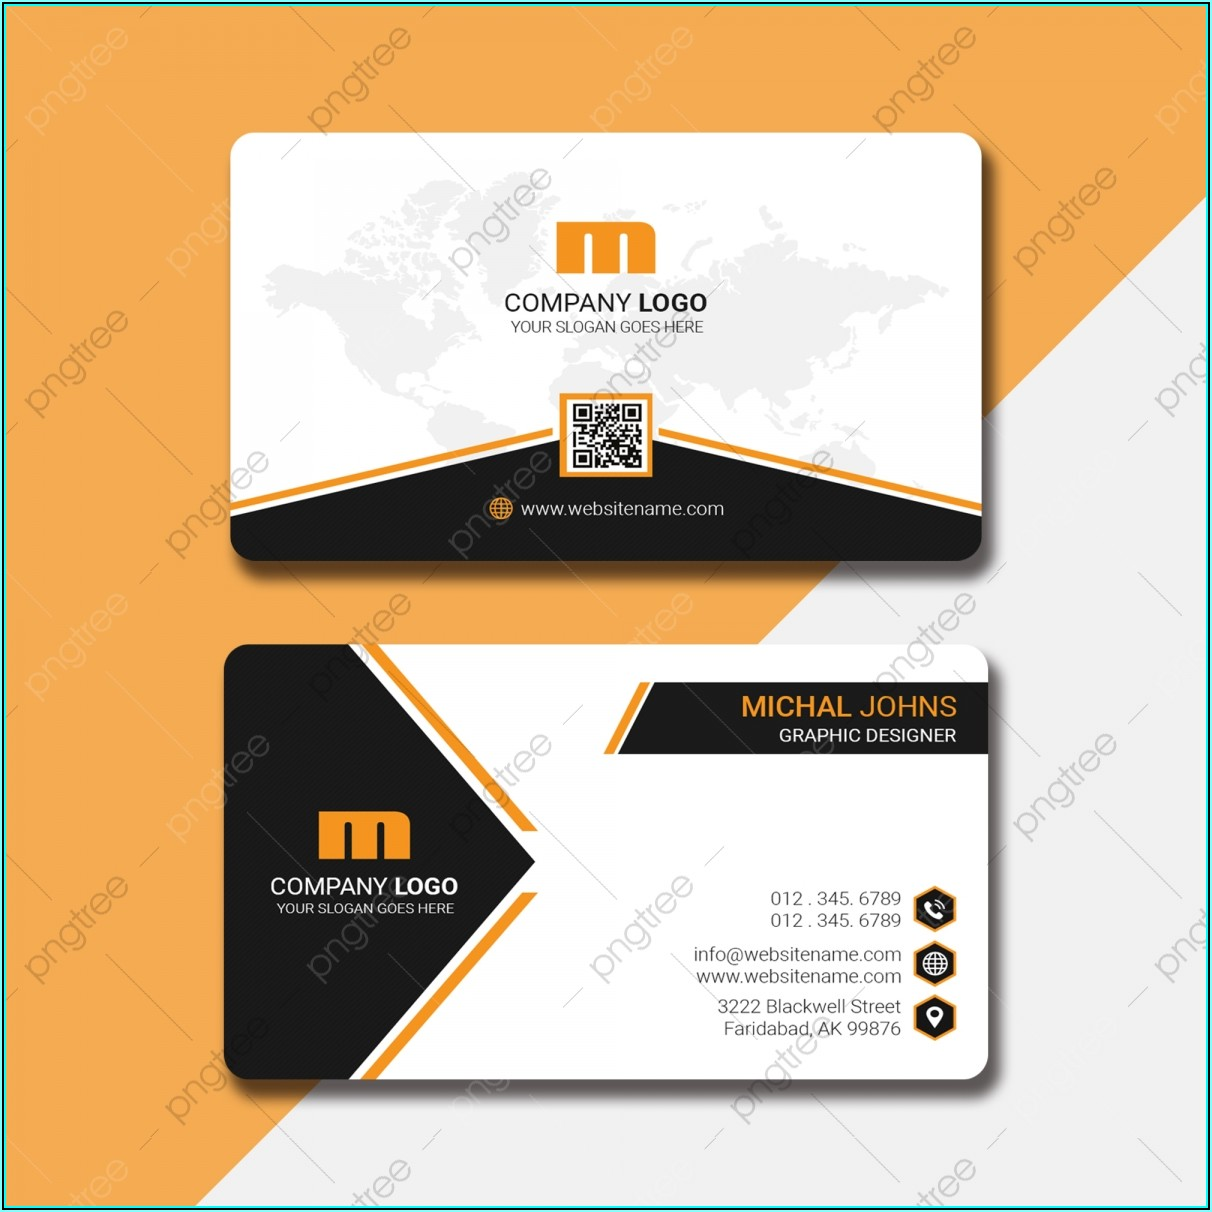 Free Business Card Template With Qr Code